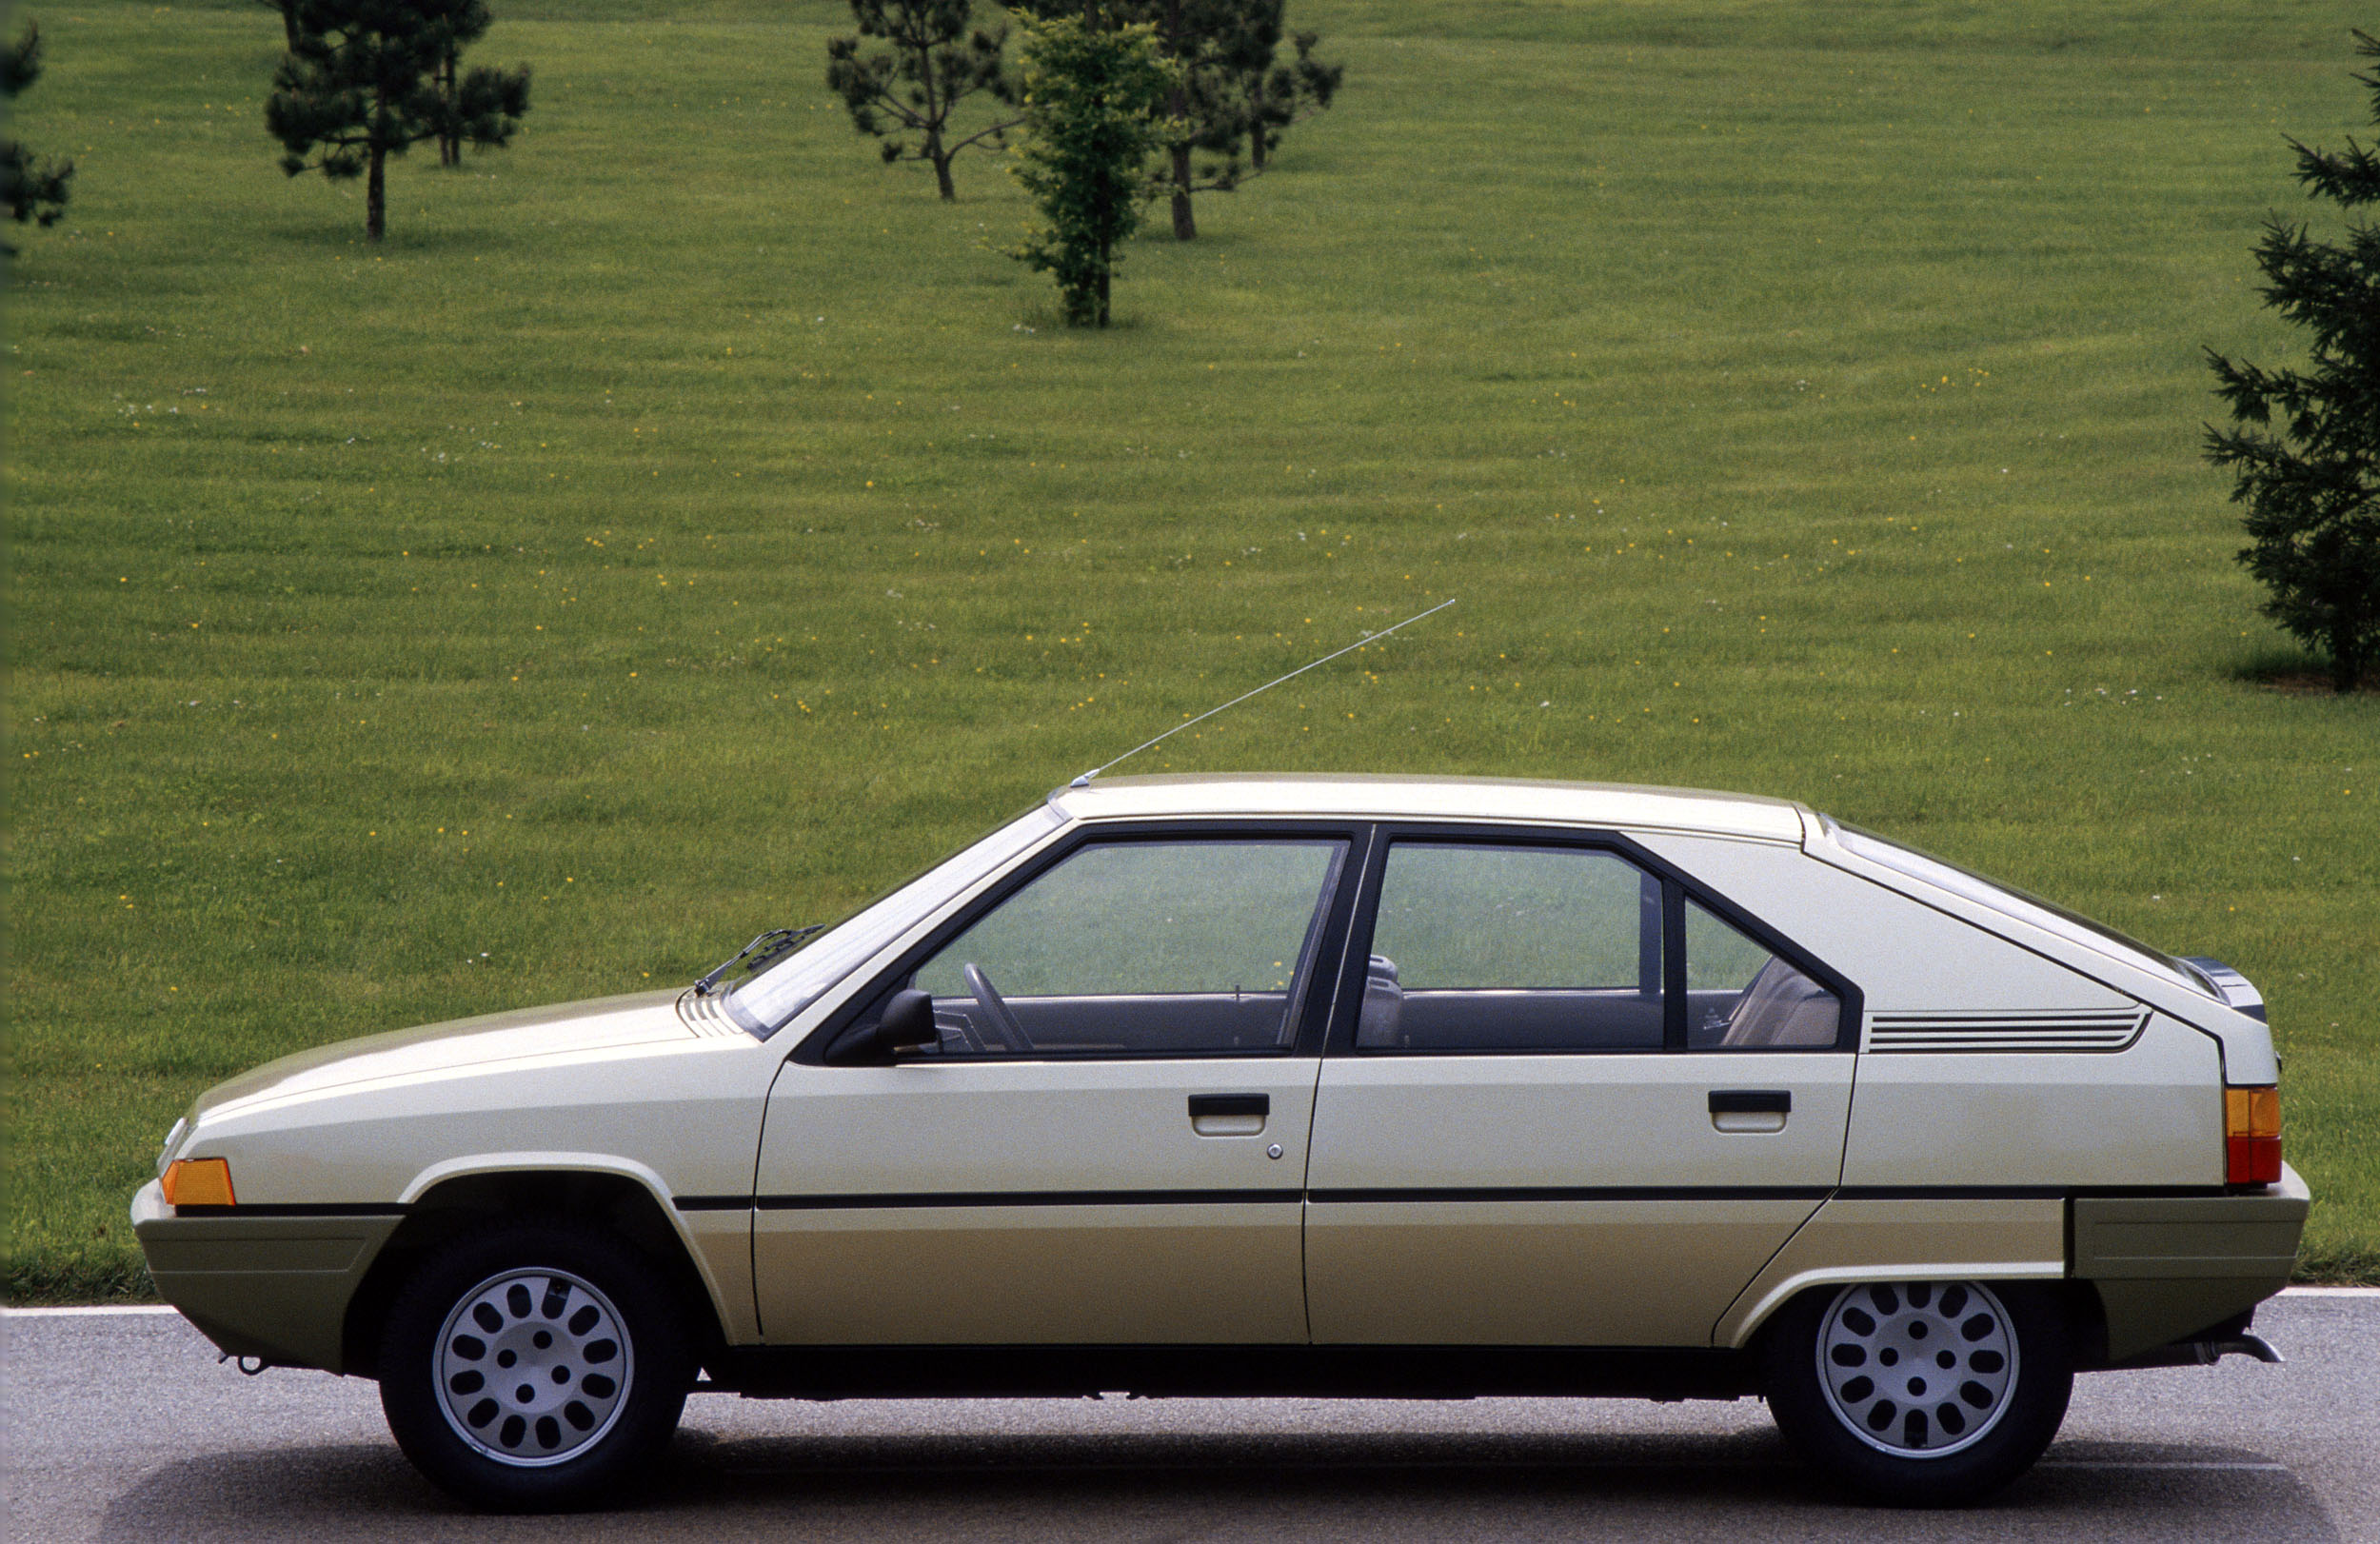 Citroen Bx 1983 1984 1985 1986 Autoevolution HD Wallpapers Download free images and photos [musssic.tk]